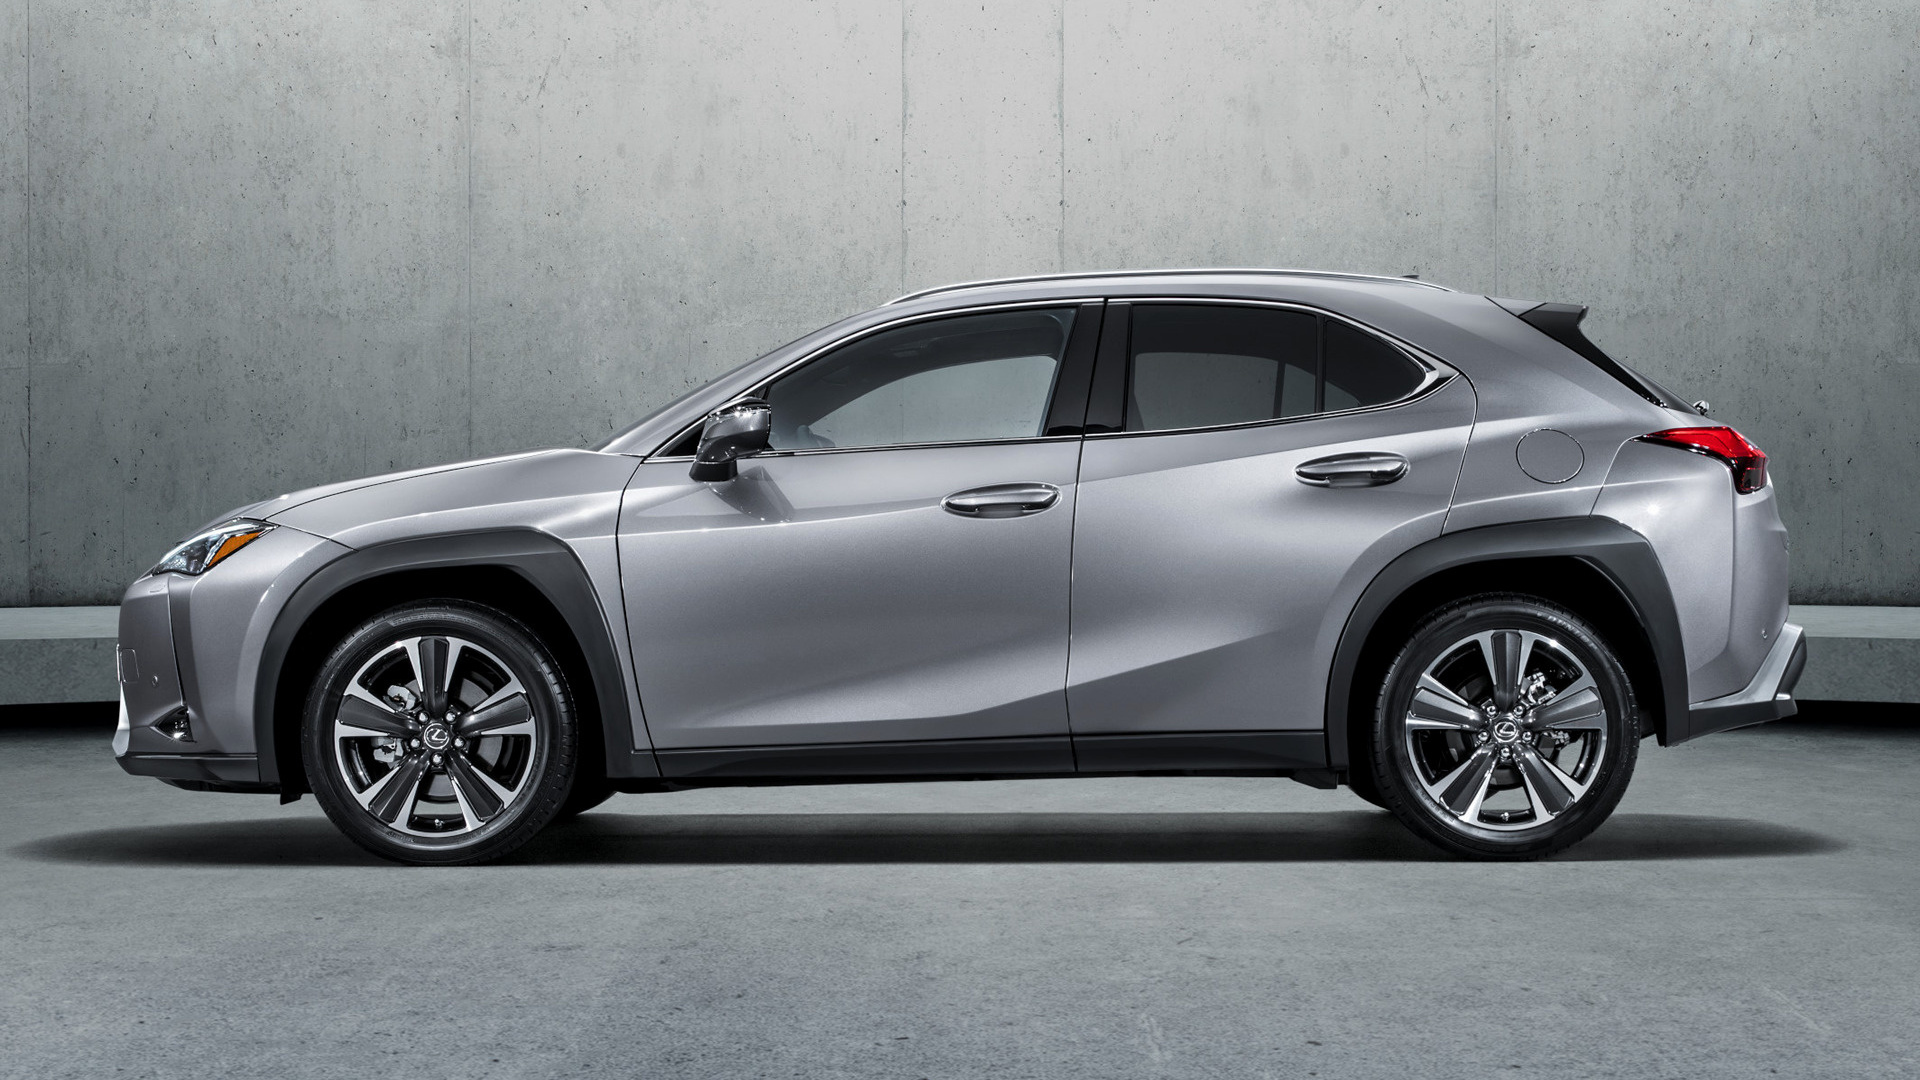 lexus ux 2018 wallpapers and hd images car pixel. Black Bedroom Furniture Sets. Home Design Ideas